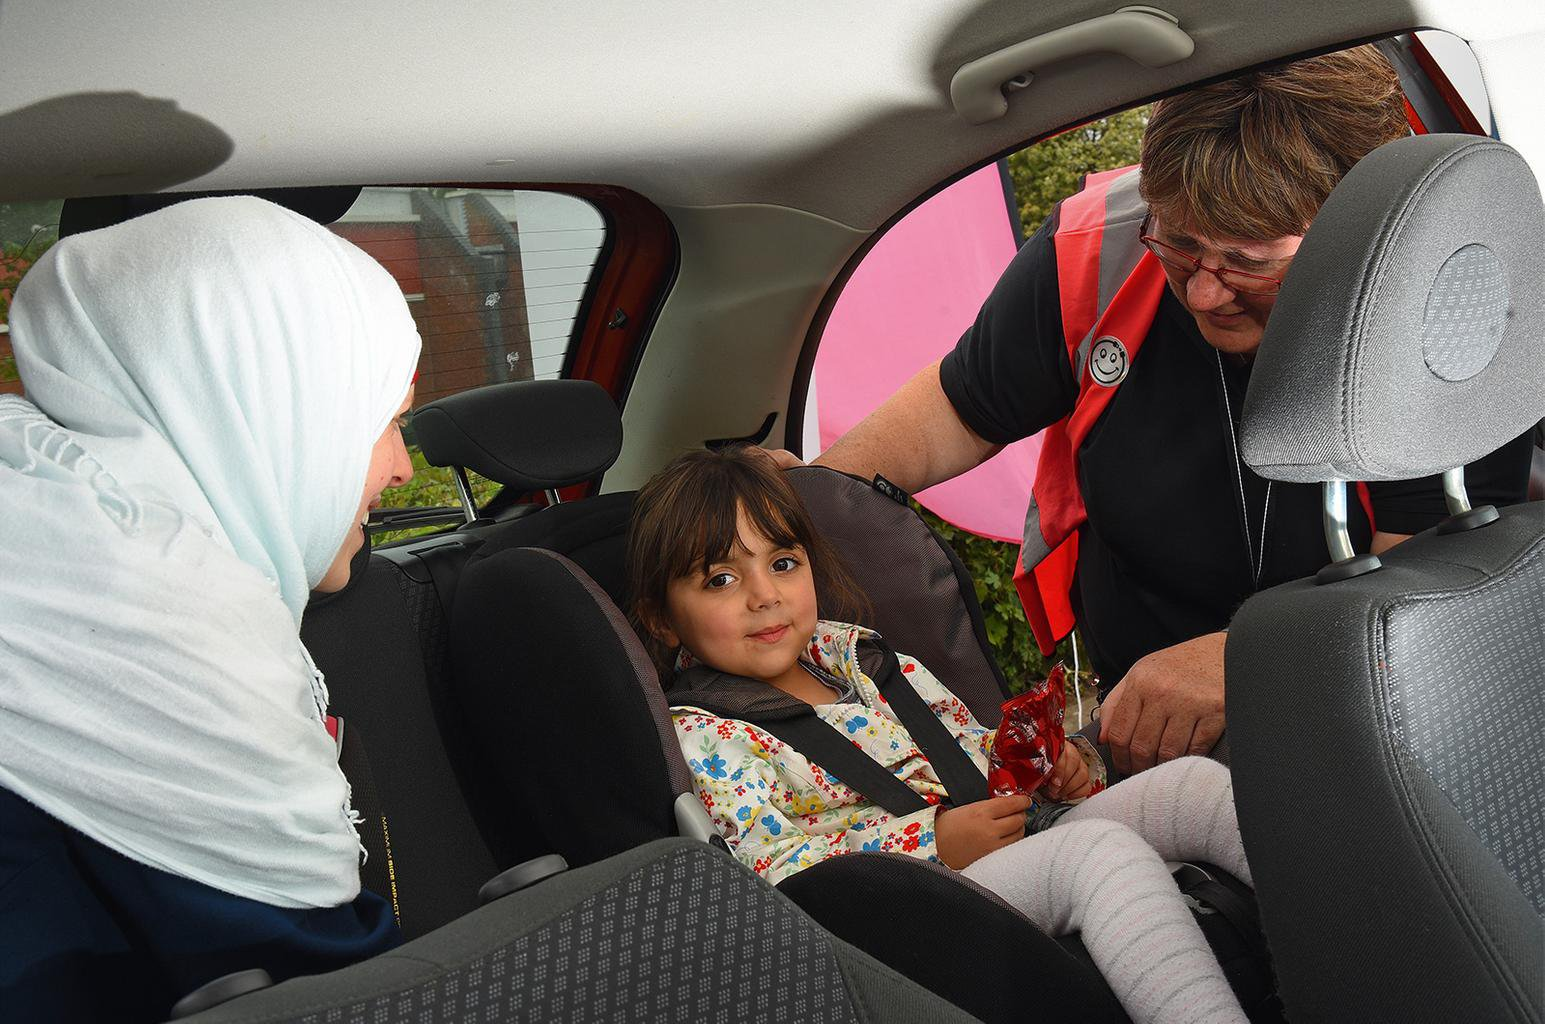 Child car seat fitting – are you putting your children at risk?